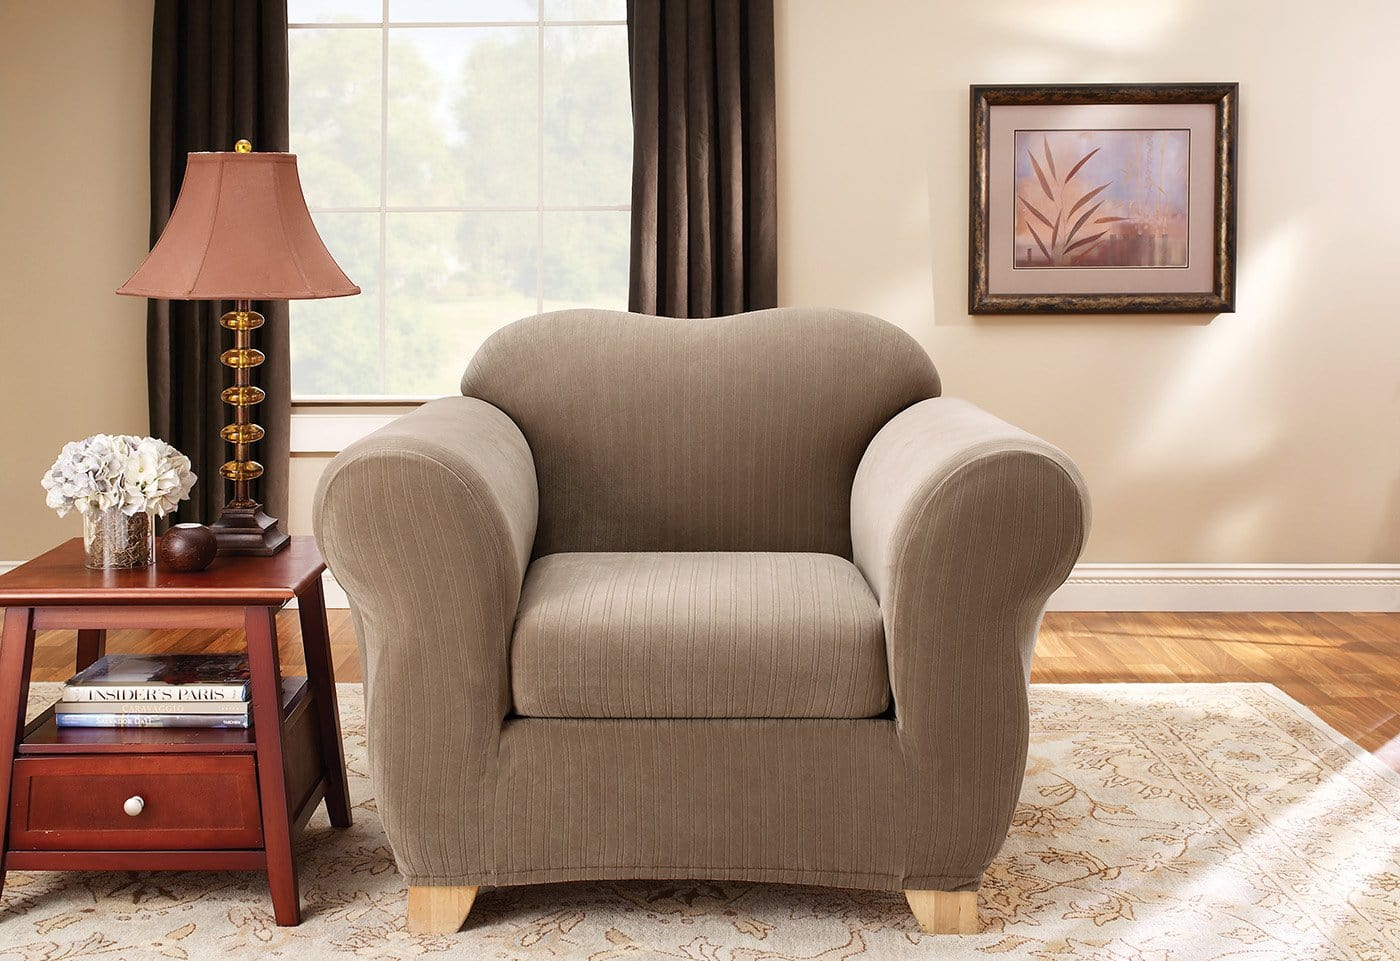 shipping stripe stretch home overstock slipcover garden fit piece today loveseat product free slipcovers sure